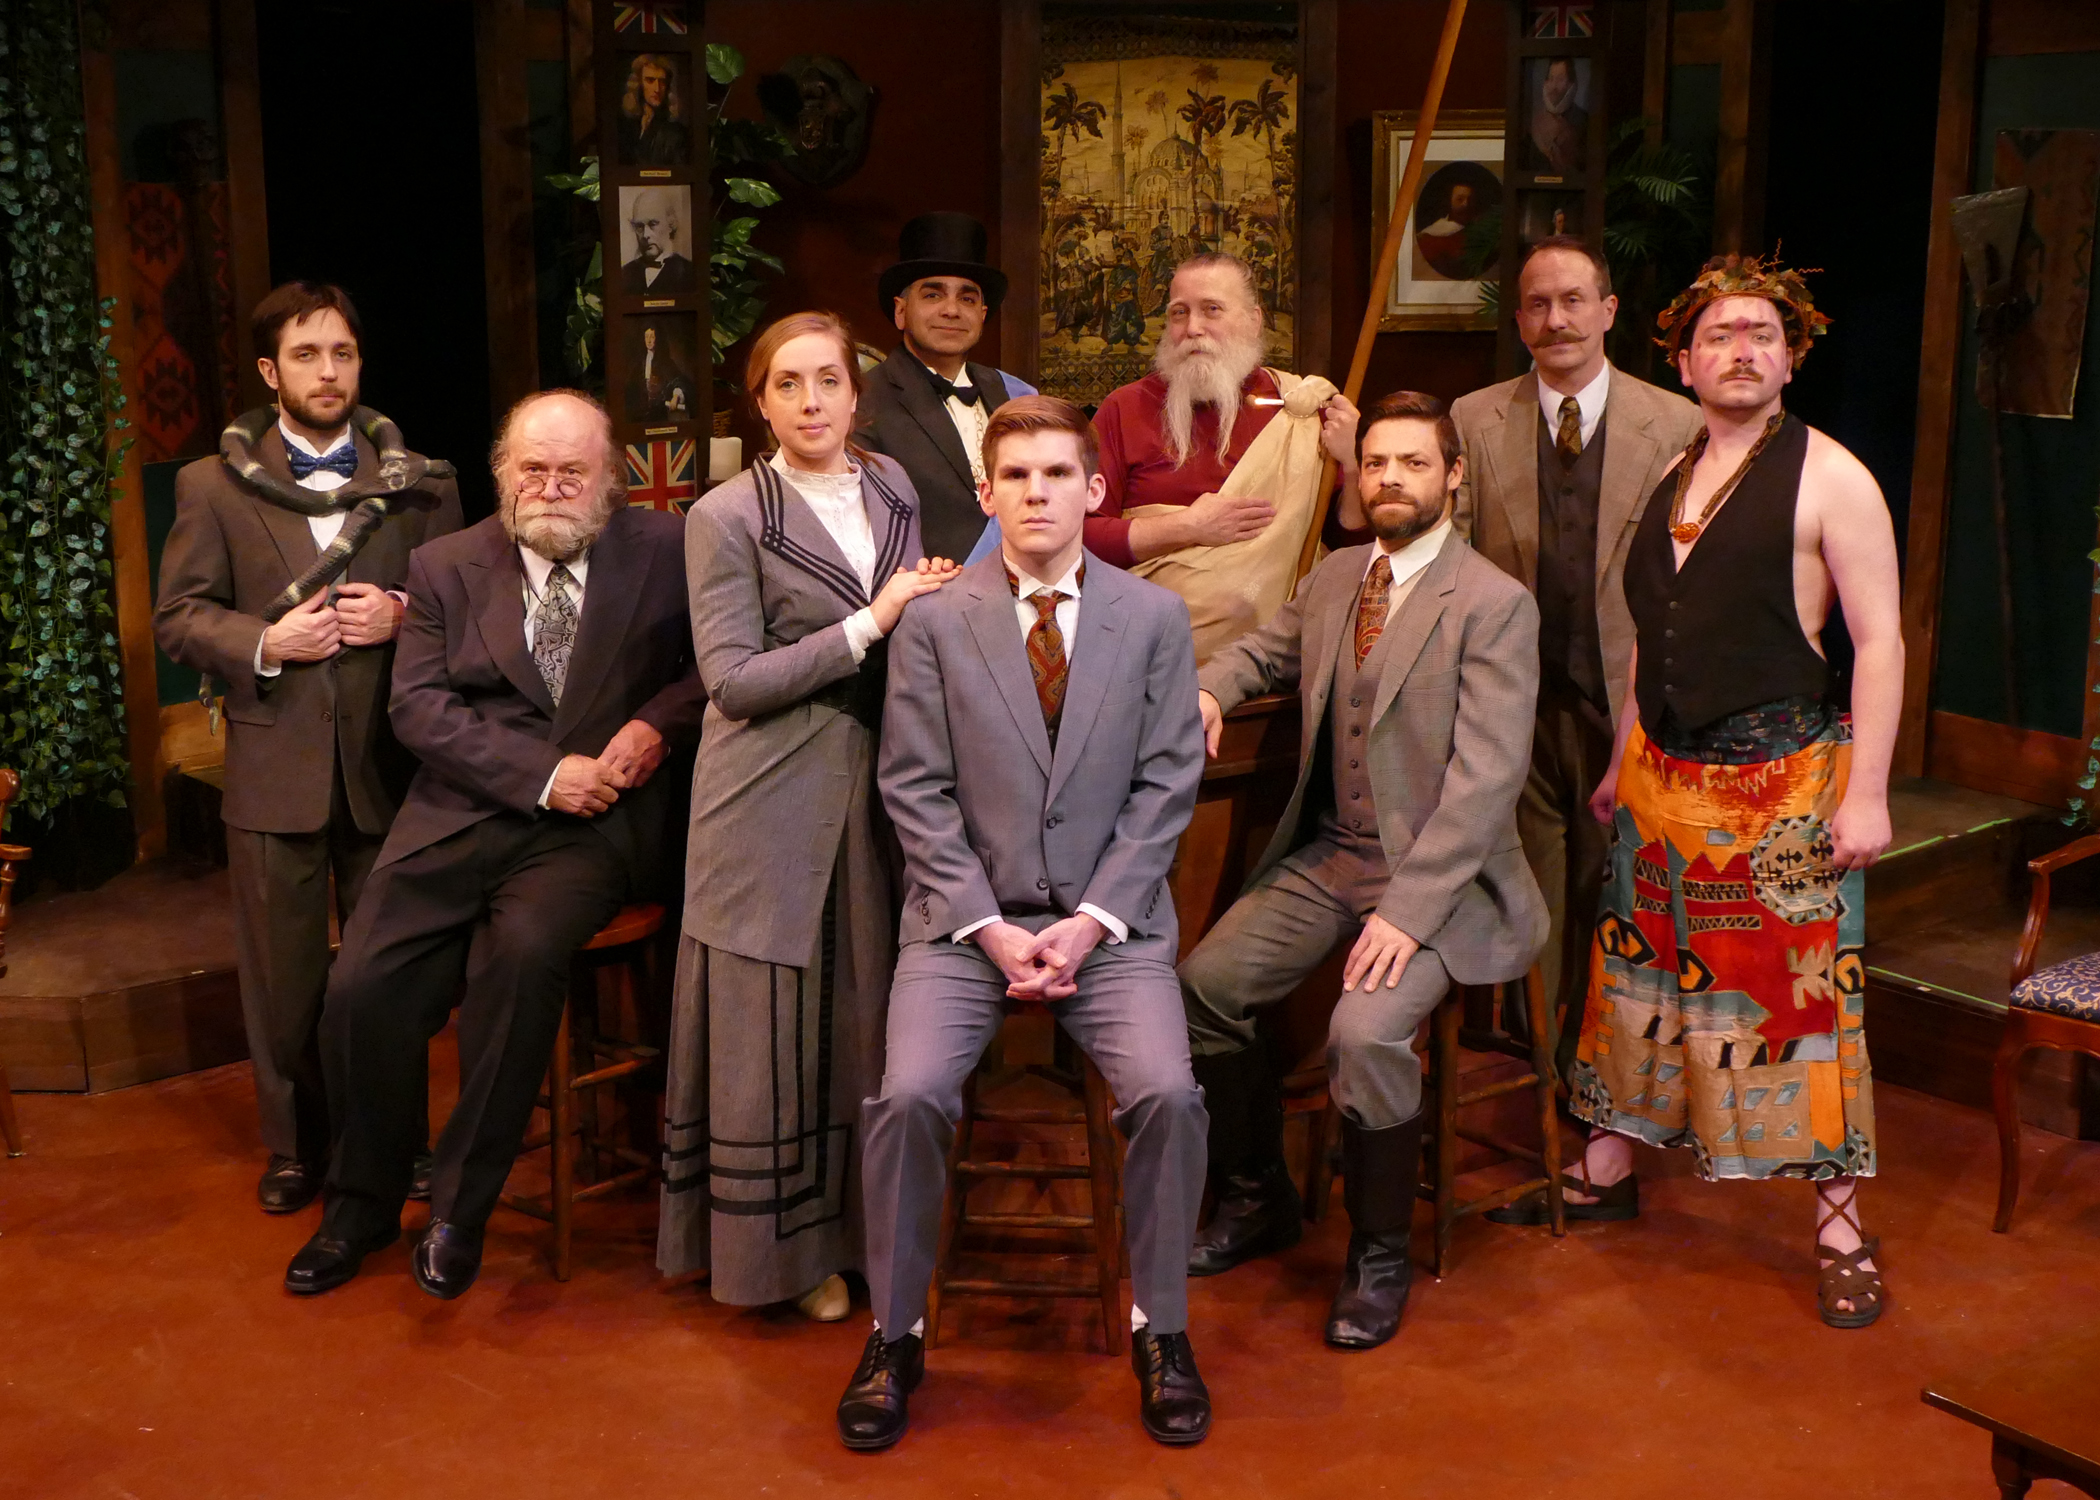 The Explorers Club cast: (left to right)   Mike Frye as Professor Cope, Robert Hawkes as Professor Sloane, Tiffany Trapnell as Phyllida Spotte-Hume and Countess Glamorgan, Corey Knick as Lucius Fretway, Assad Khaishgi as Sir Bernard Humphries, Tyson Douglas Rand as Beebe and Irish Assassin, Mark Rabkin as Harry Percy, Curt Arnold as Professor Walling and Colin P. McCauley as Luigi